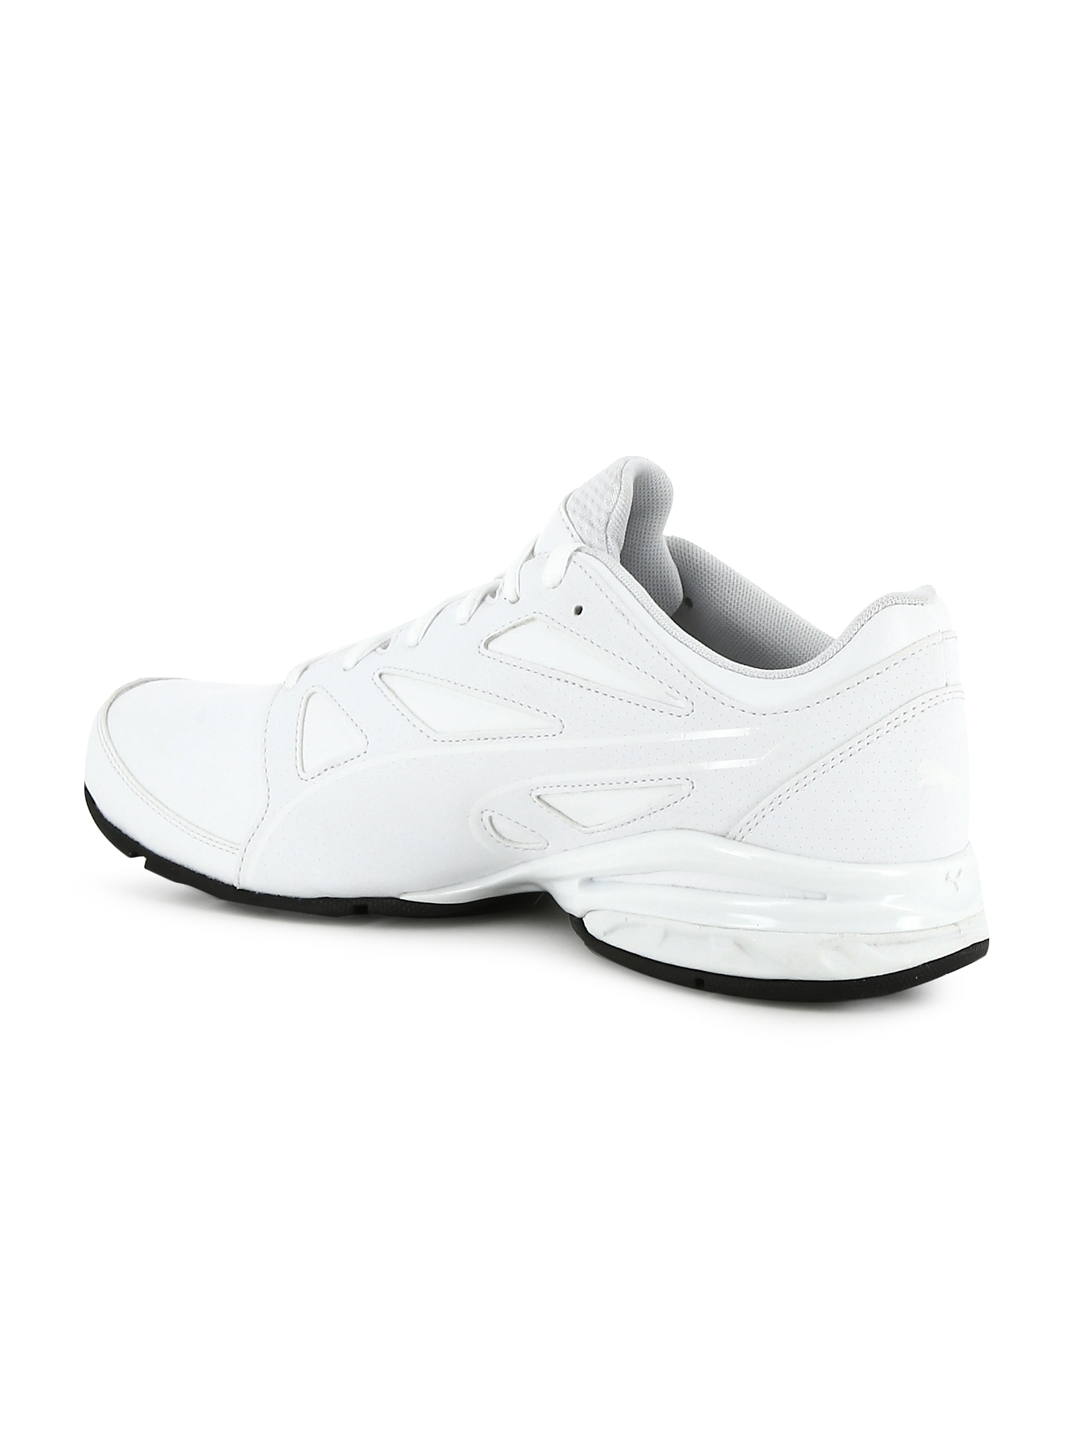 a9575d036f4 Buy Puma Men White Tazon Modern Fracture Running Shoes - Sports ...